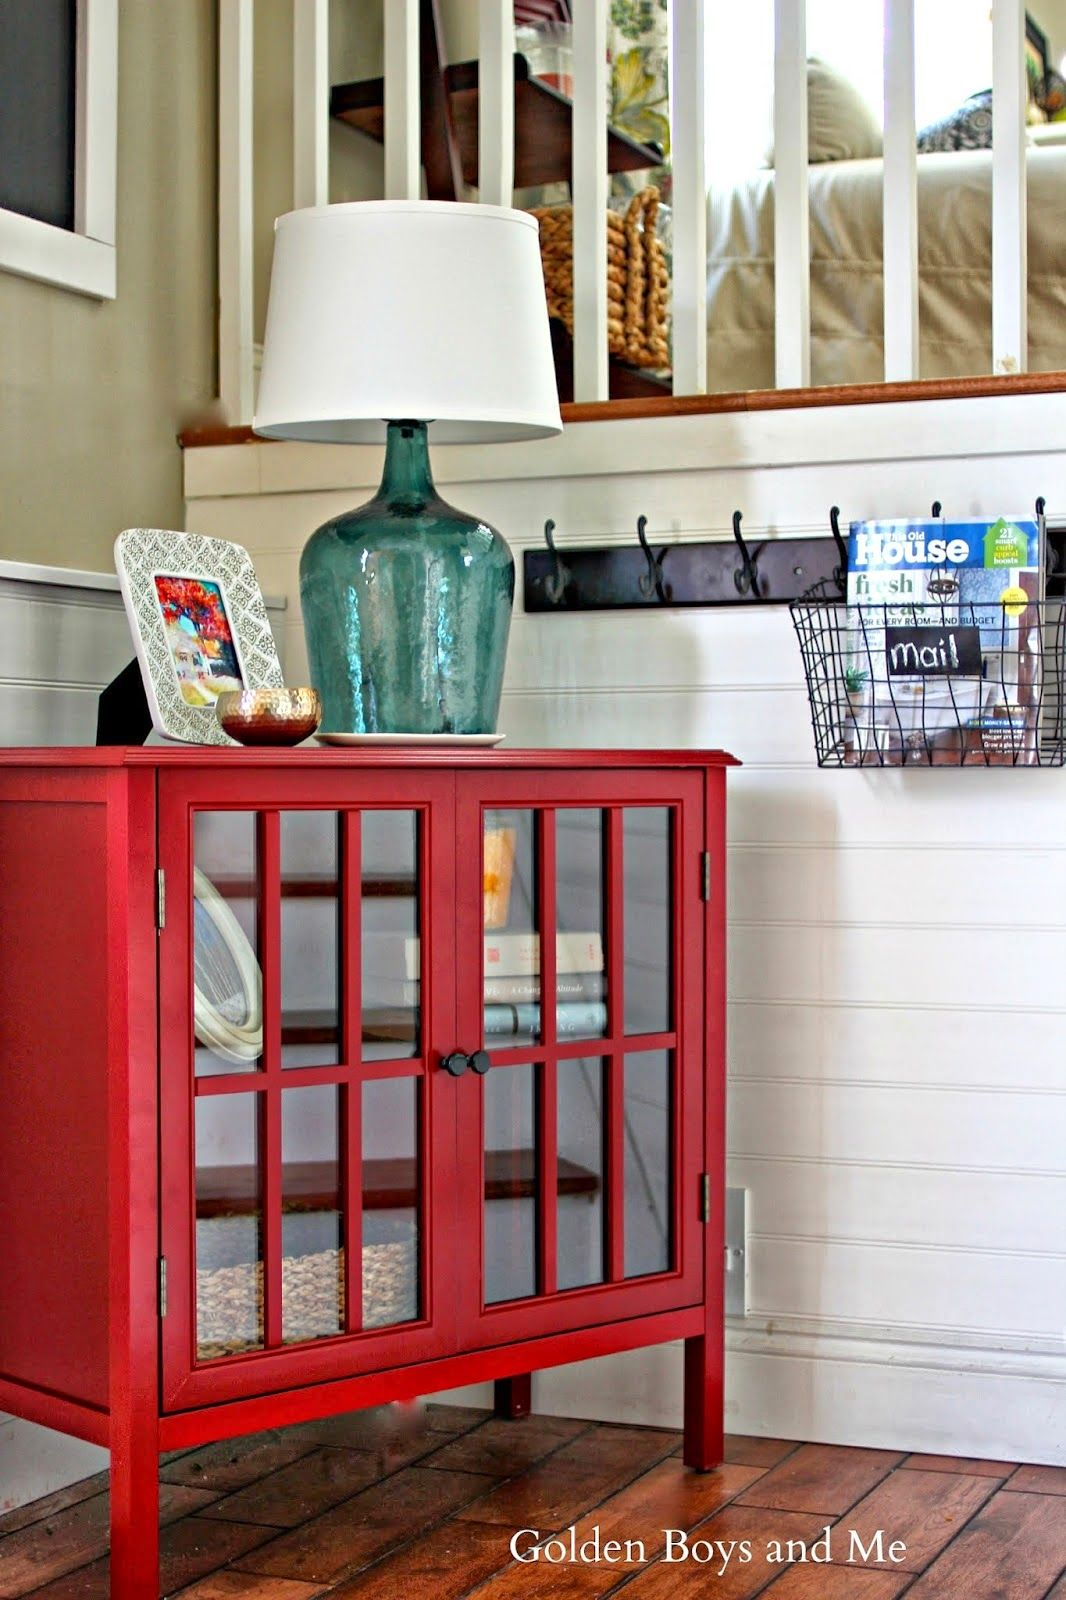 Wire basket to hold mail in entrywaygoldenboysandme